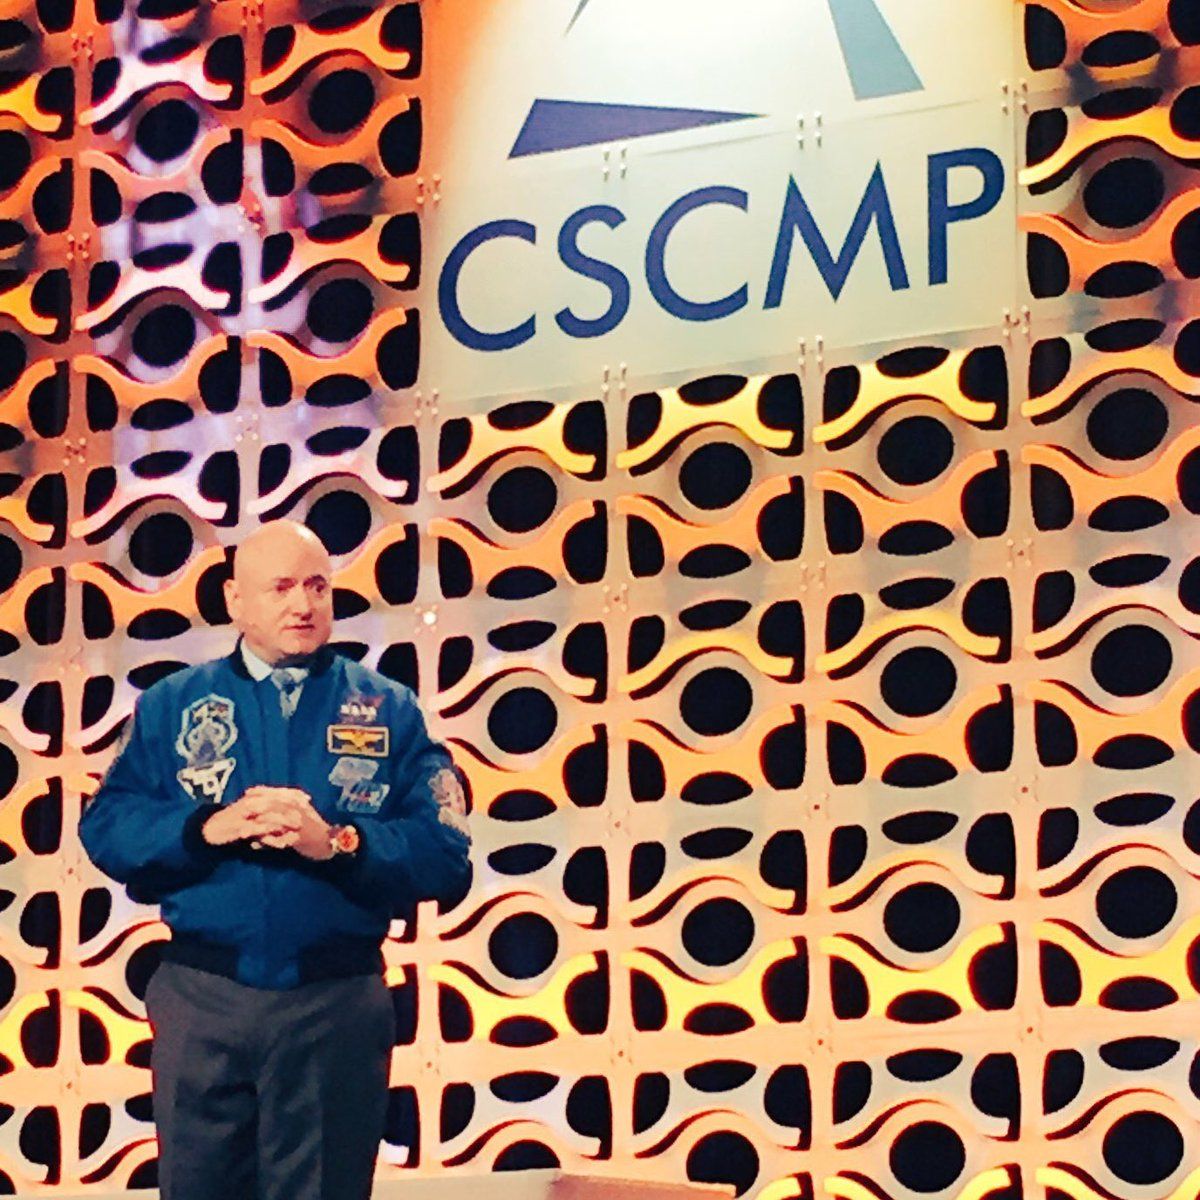 Always look for the things that are unlikely but have serious consequences. @StationCDRKelly at #CSCMP2016 https://t.co/RX83QAn1ZS